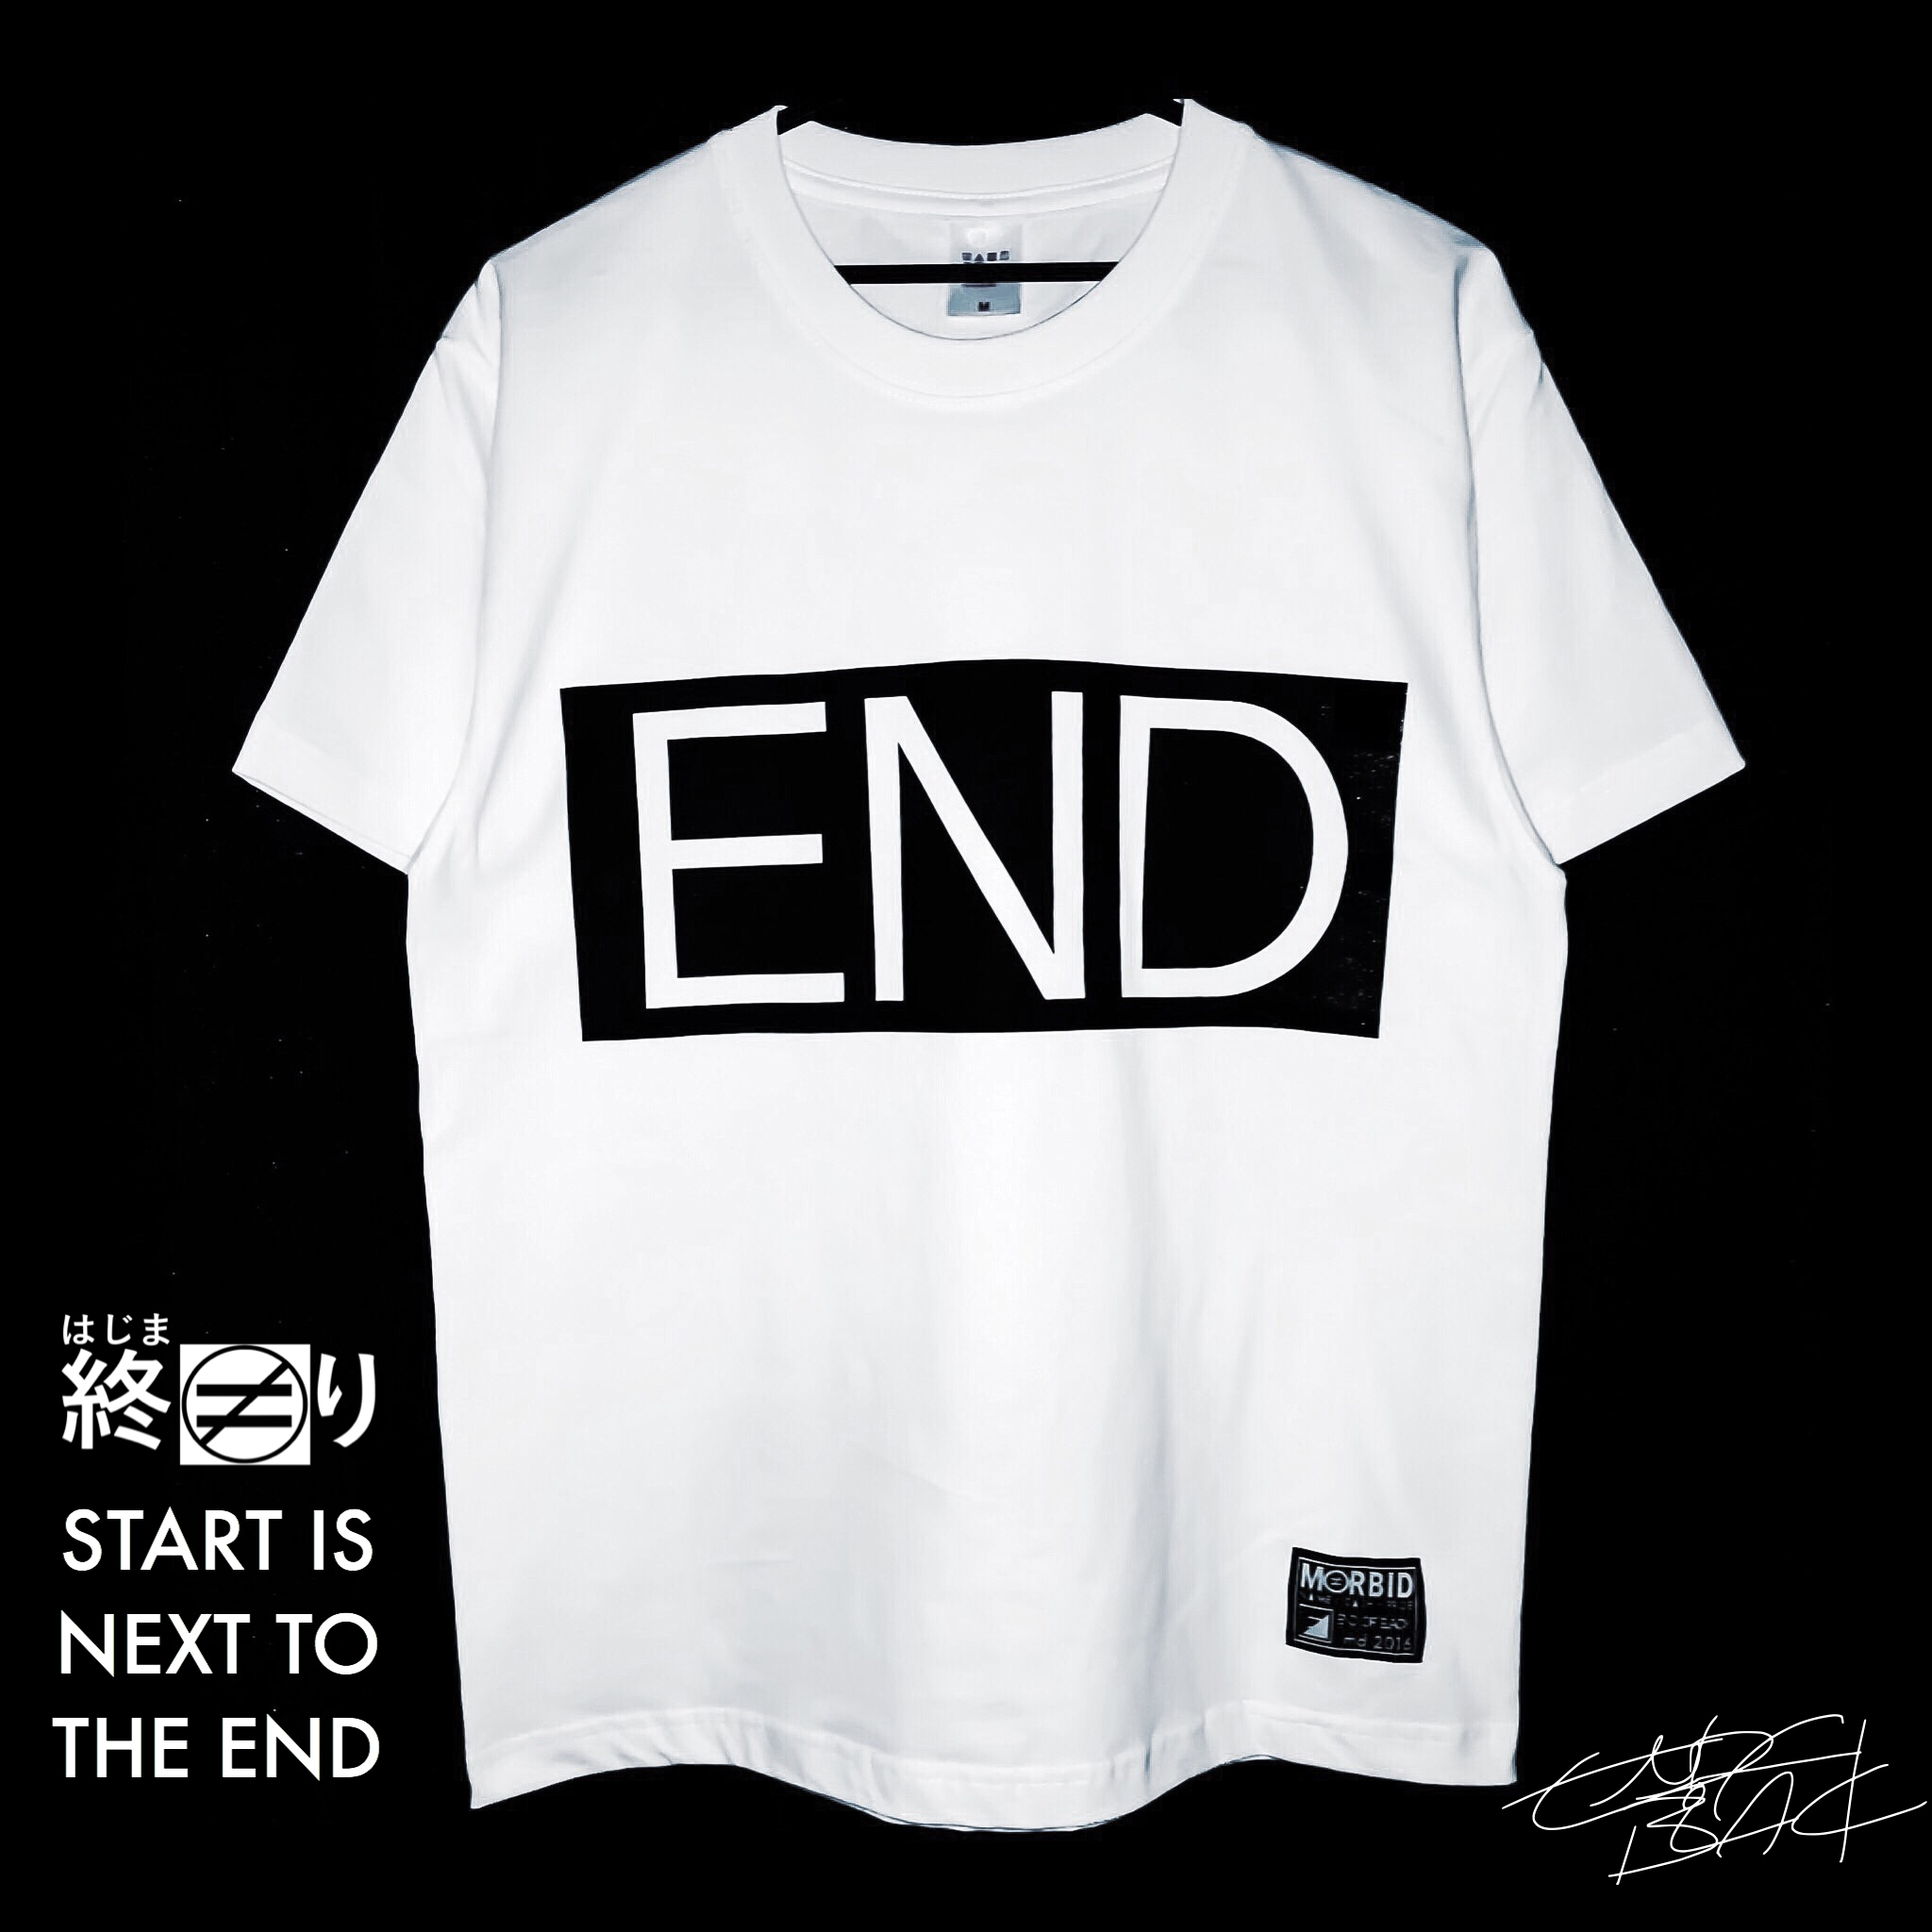 [END-T]6.2オンスシャツ ¥4,500+tax